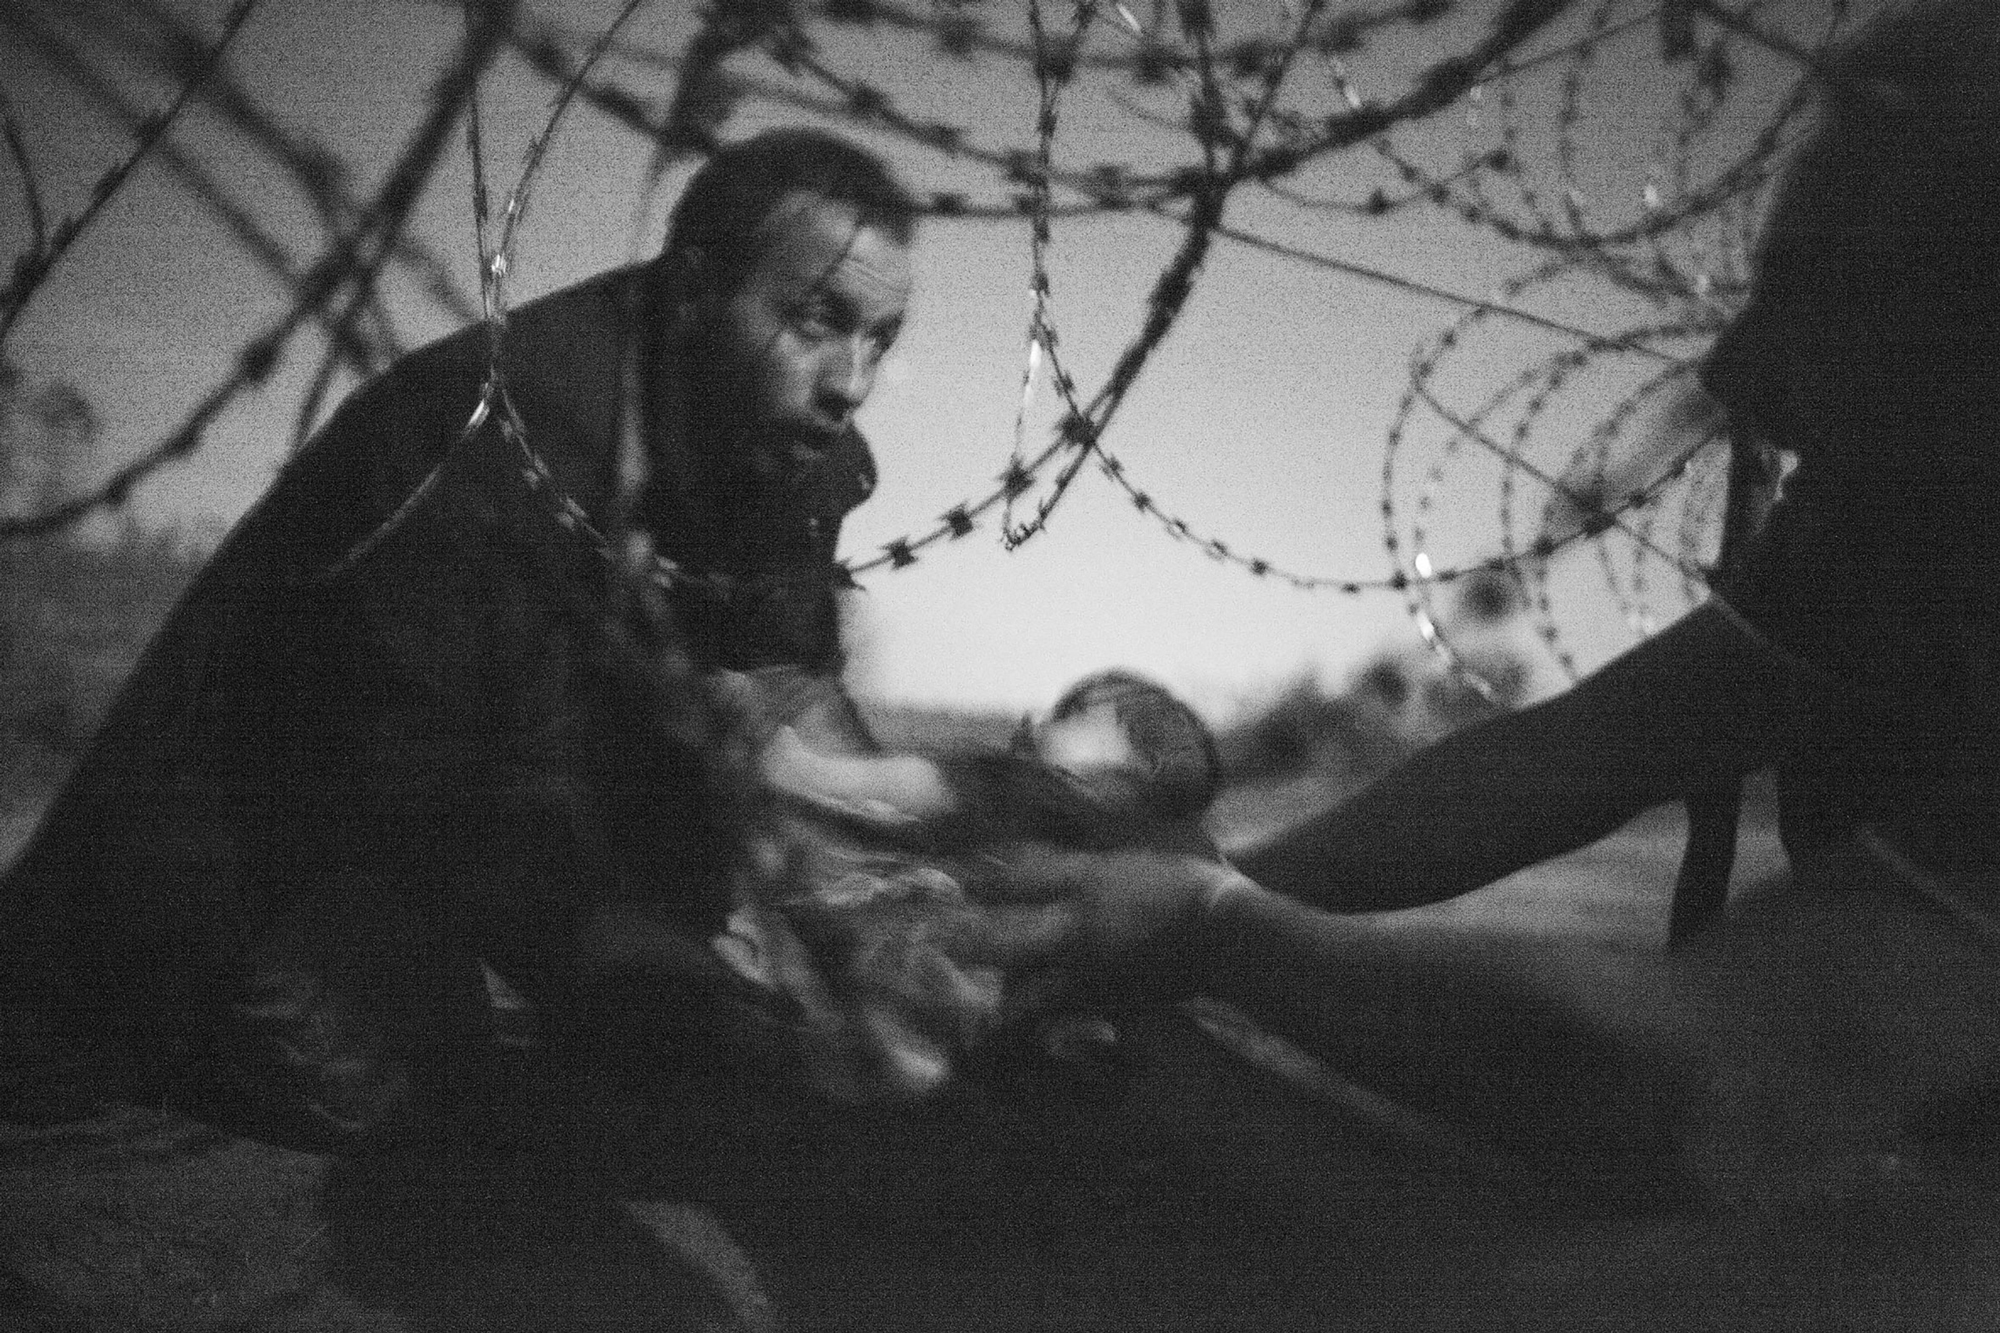 Australian photographer Warren Richardson won the World Press Photo of the Year award for his image of a man passing a baby through the fence at the Serbia/Hungary border in Roeszke, Hungary last year. [EPA]